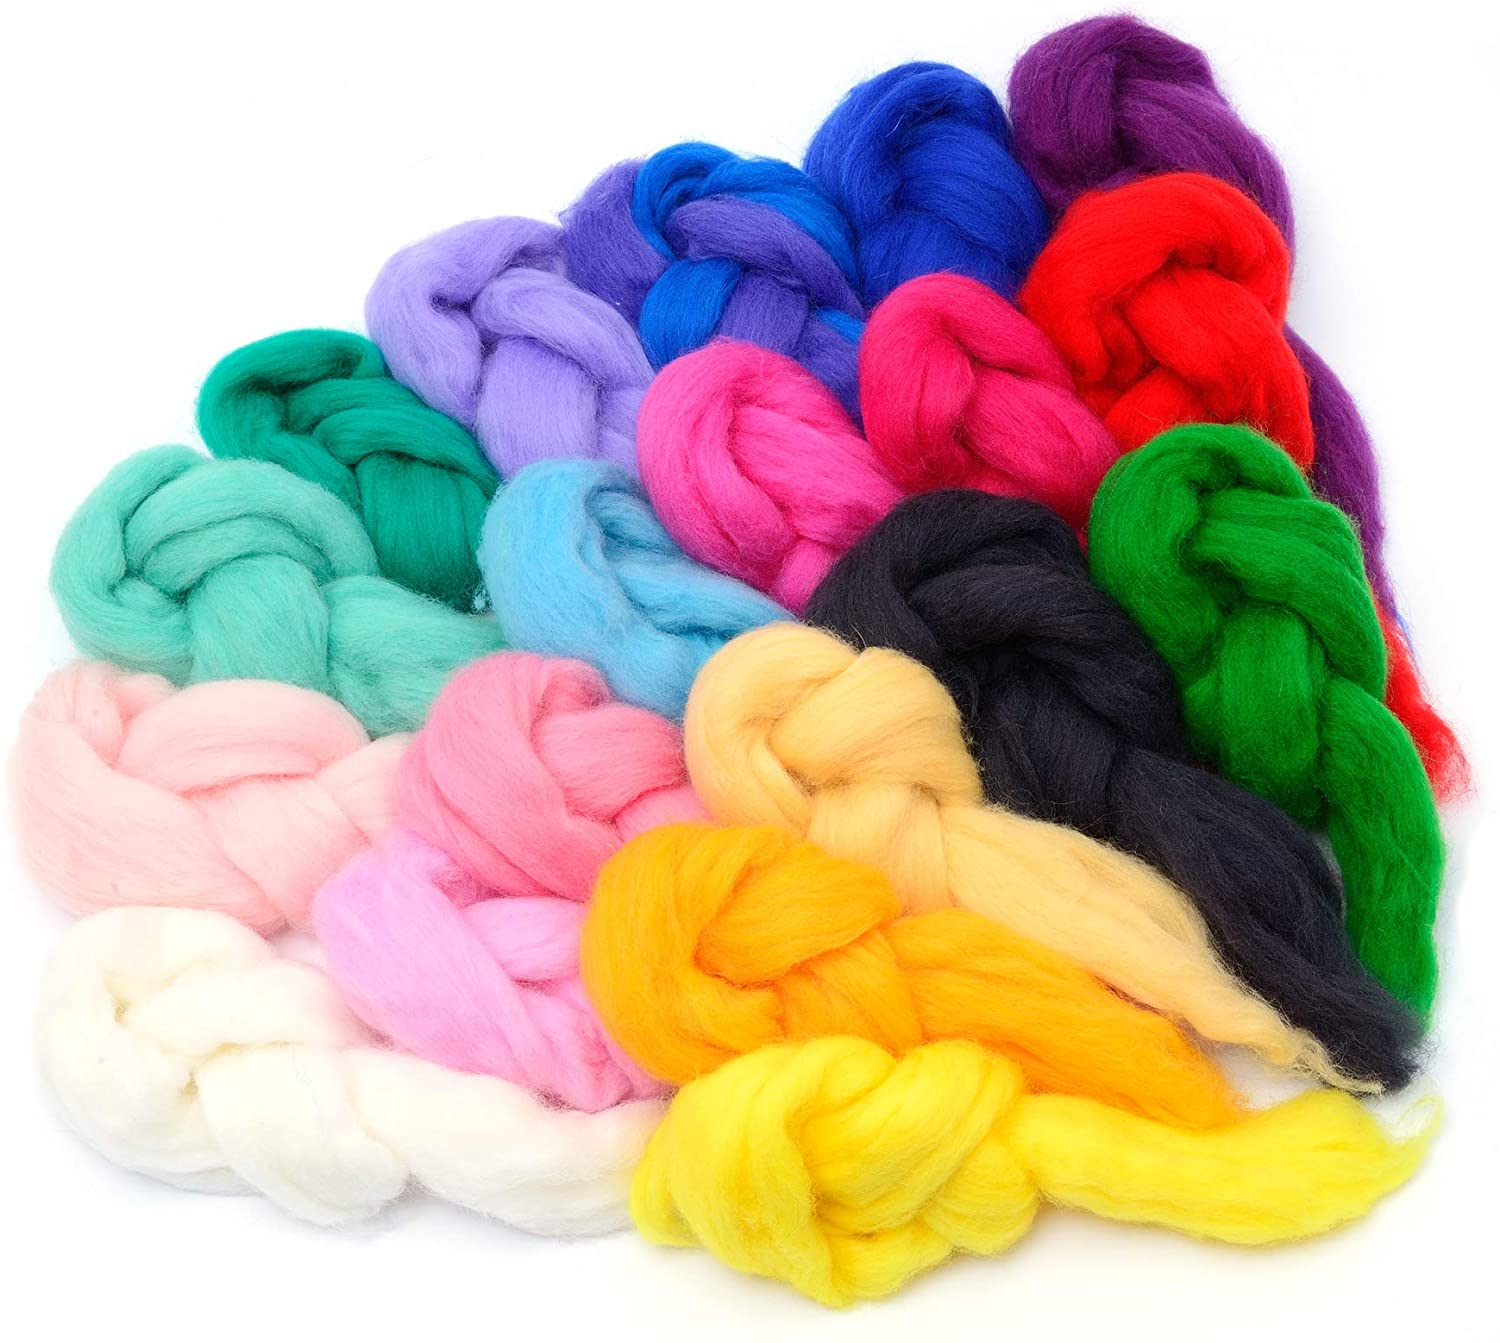 Glaciart One Spinning Fiber Merino Wool - Super Soft 20 Colors (10gram per Color) Unspun Roving Wool for Felting and Felting Yarn Craft Supplies